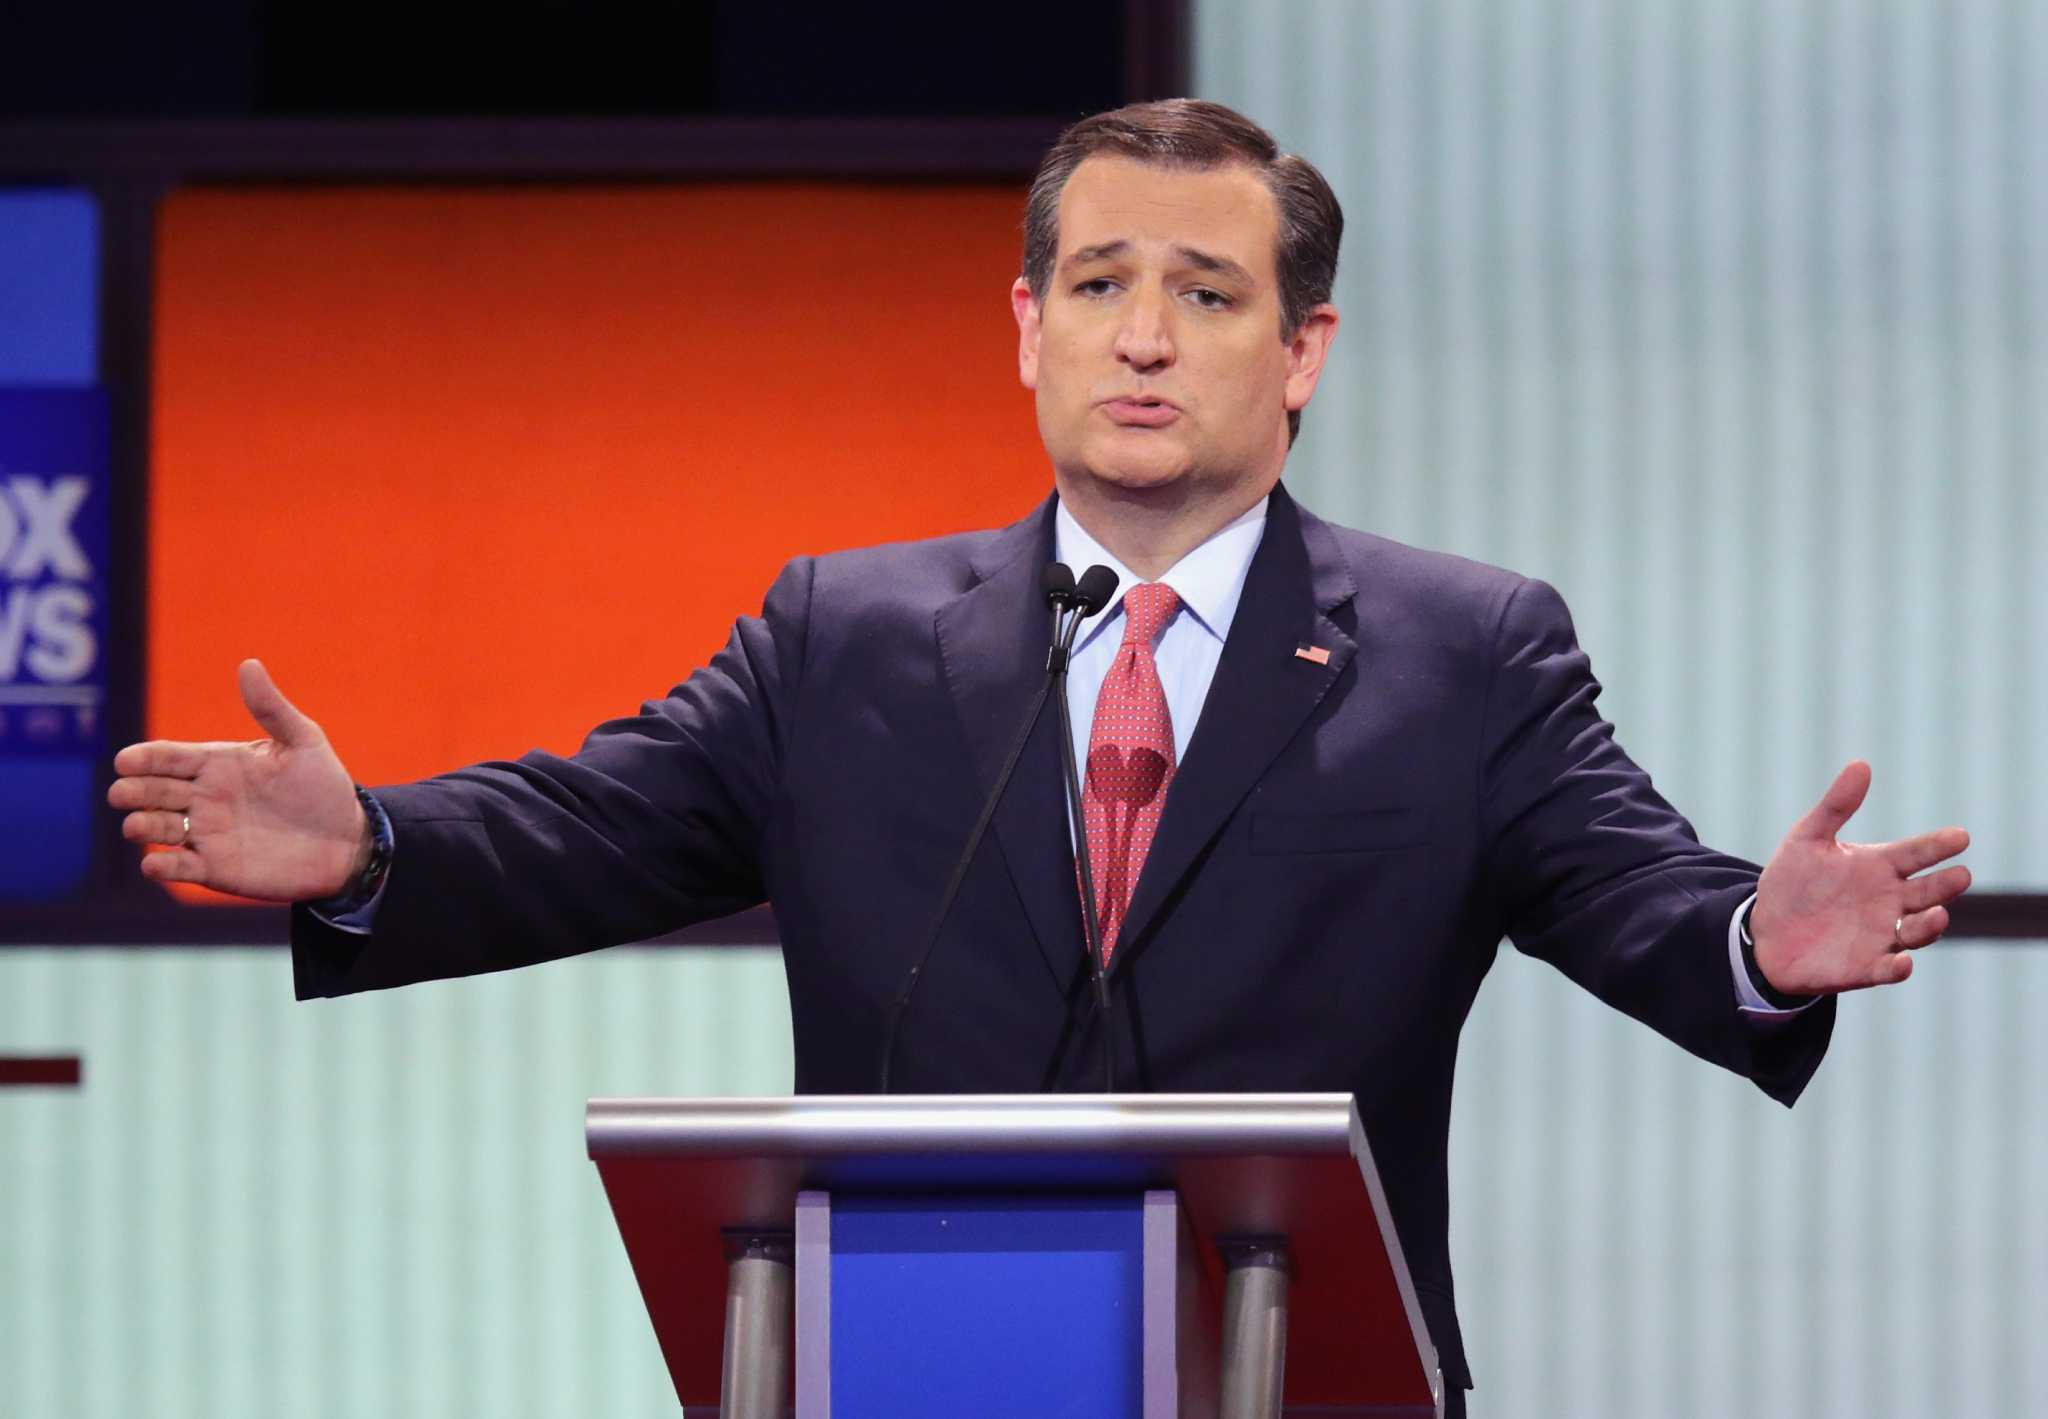 Sen ted cruz took to twitter this weekend to voice his support for